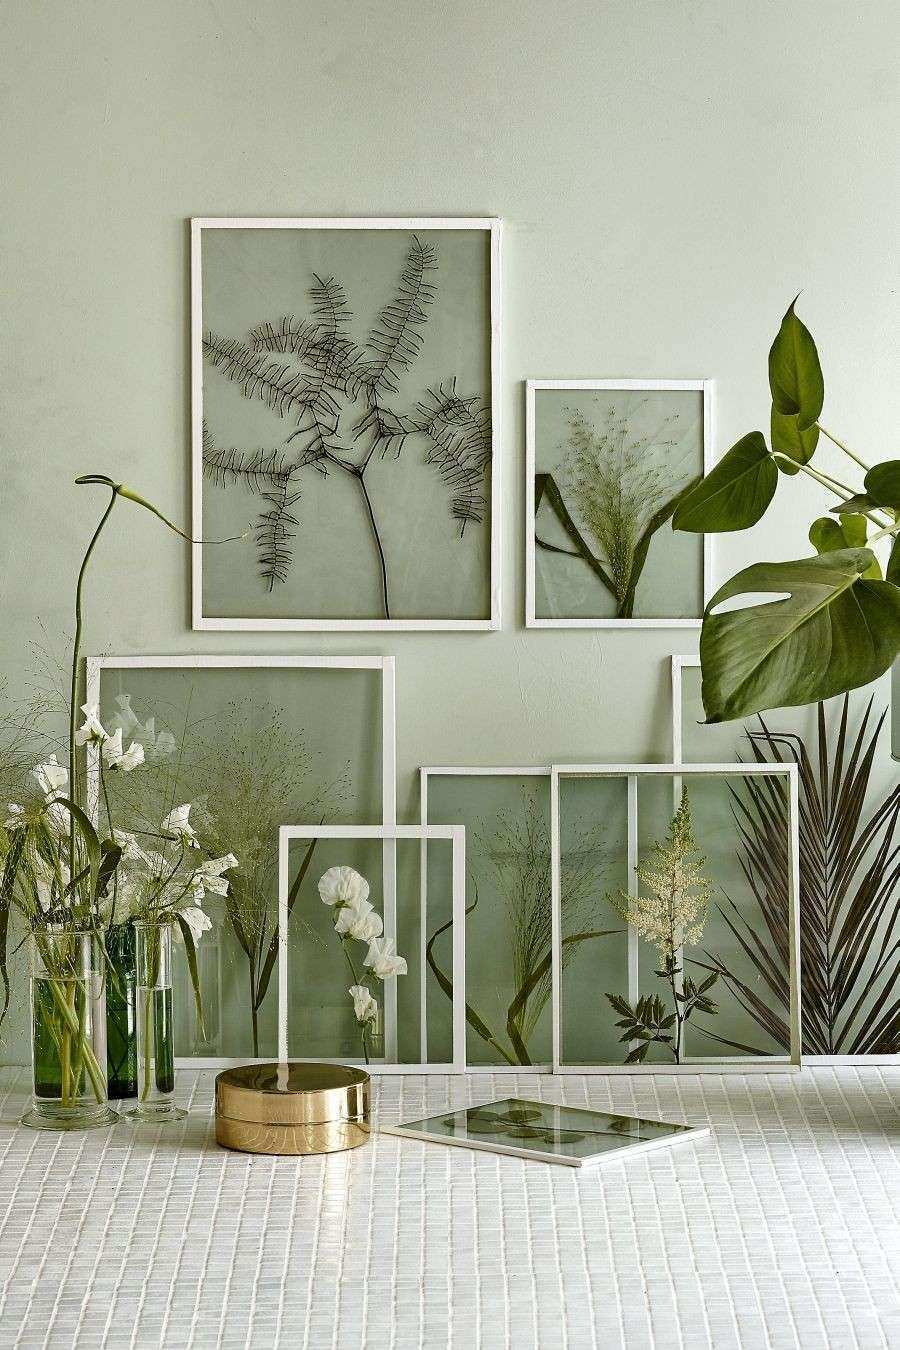 Glass Wall Art and Decor Inspirational Framing Dried Plants and Flowers In Clear Glass Frames